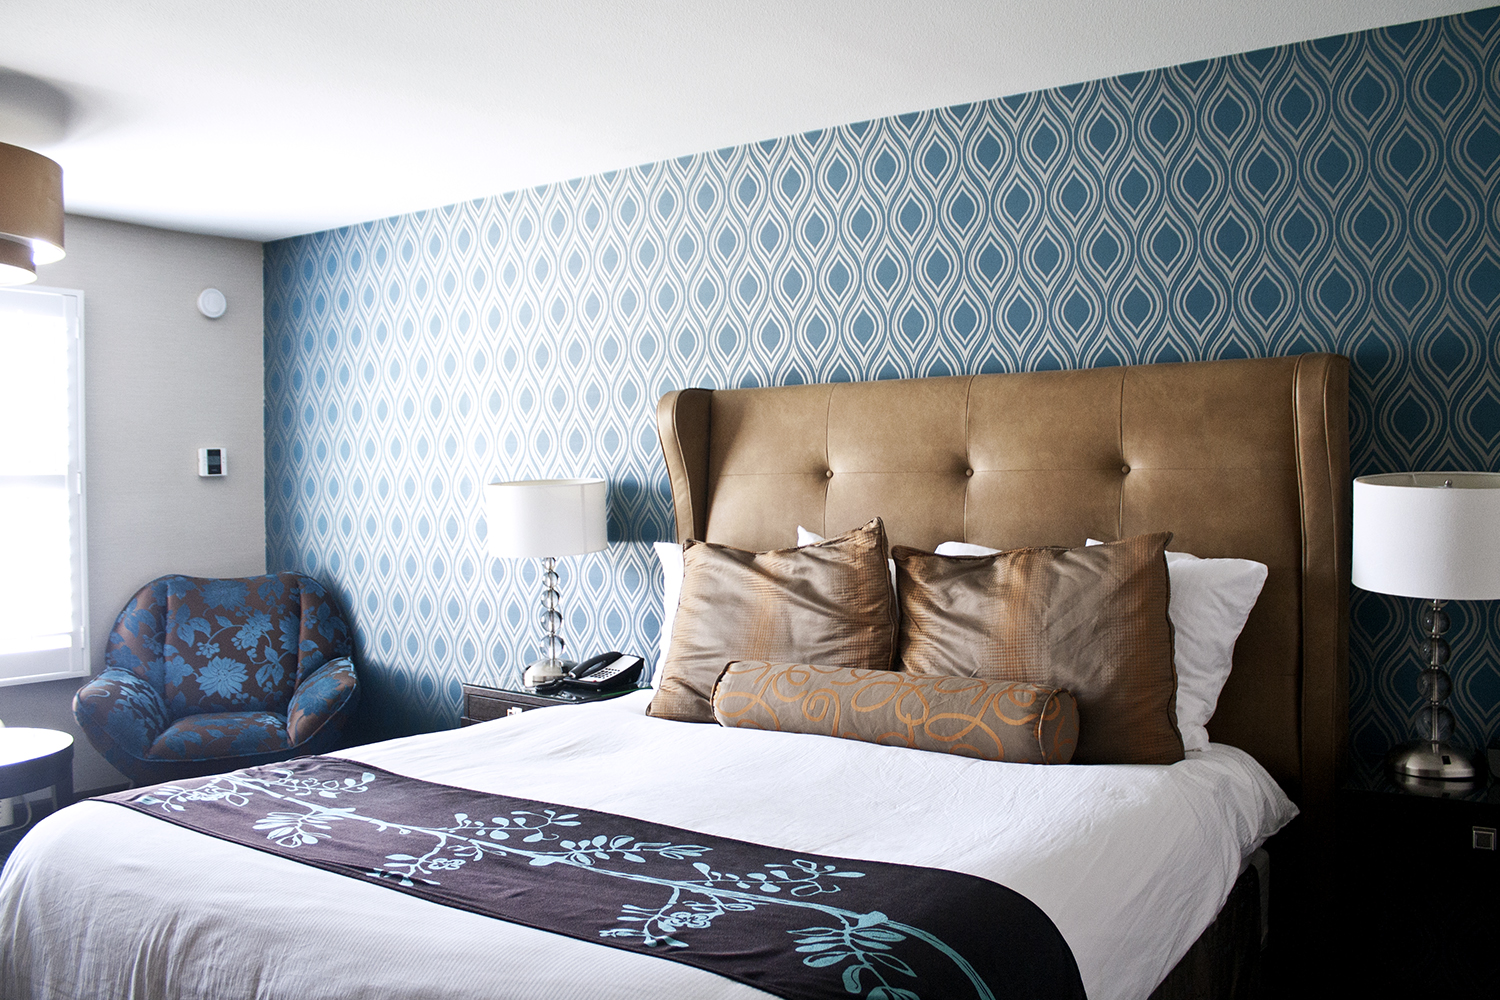 12napa-hotel-room-wallpaper-decor-travel-fashion-style